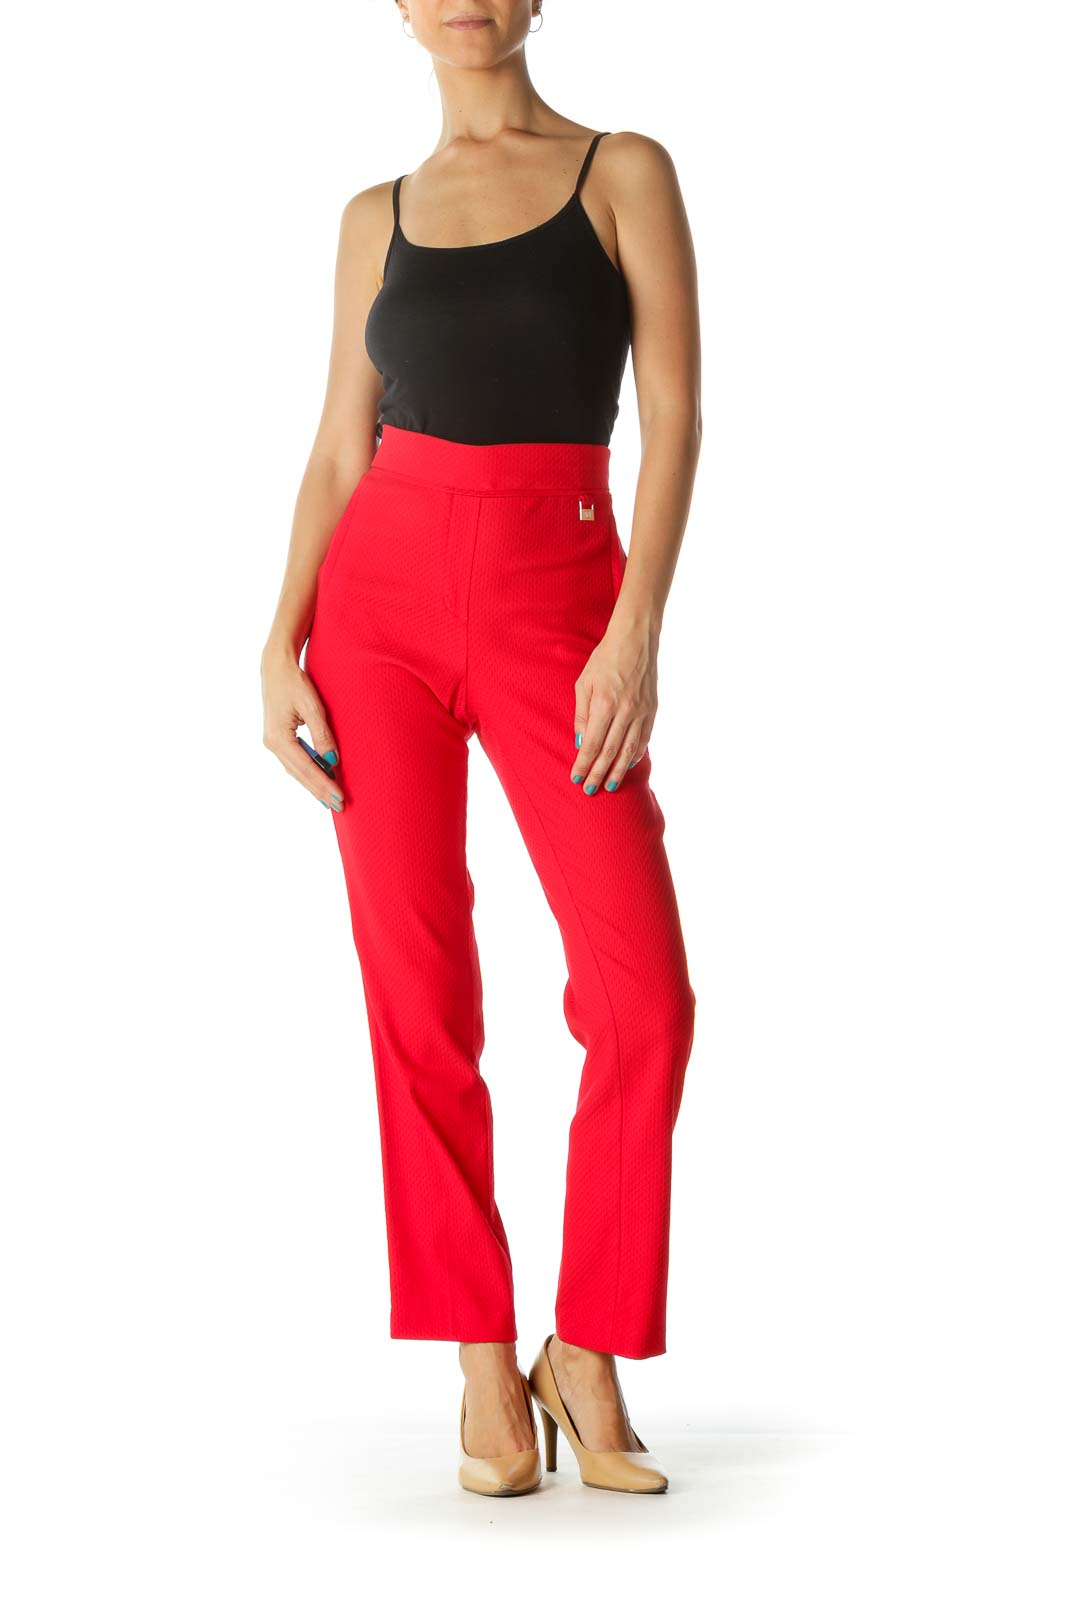 Red Slim Fit Stretchy Pants